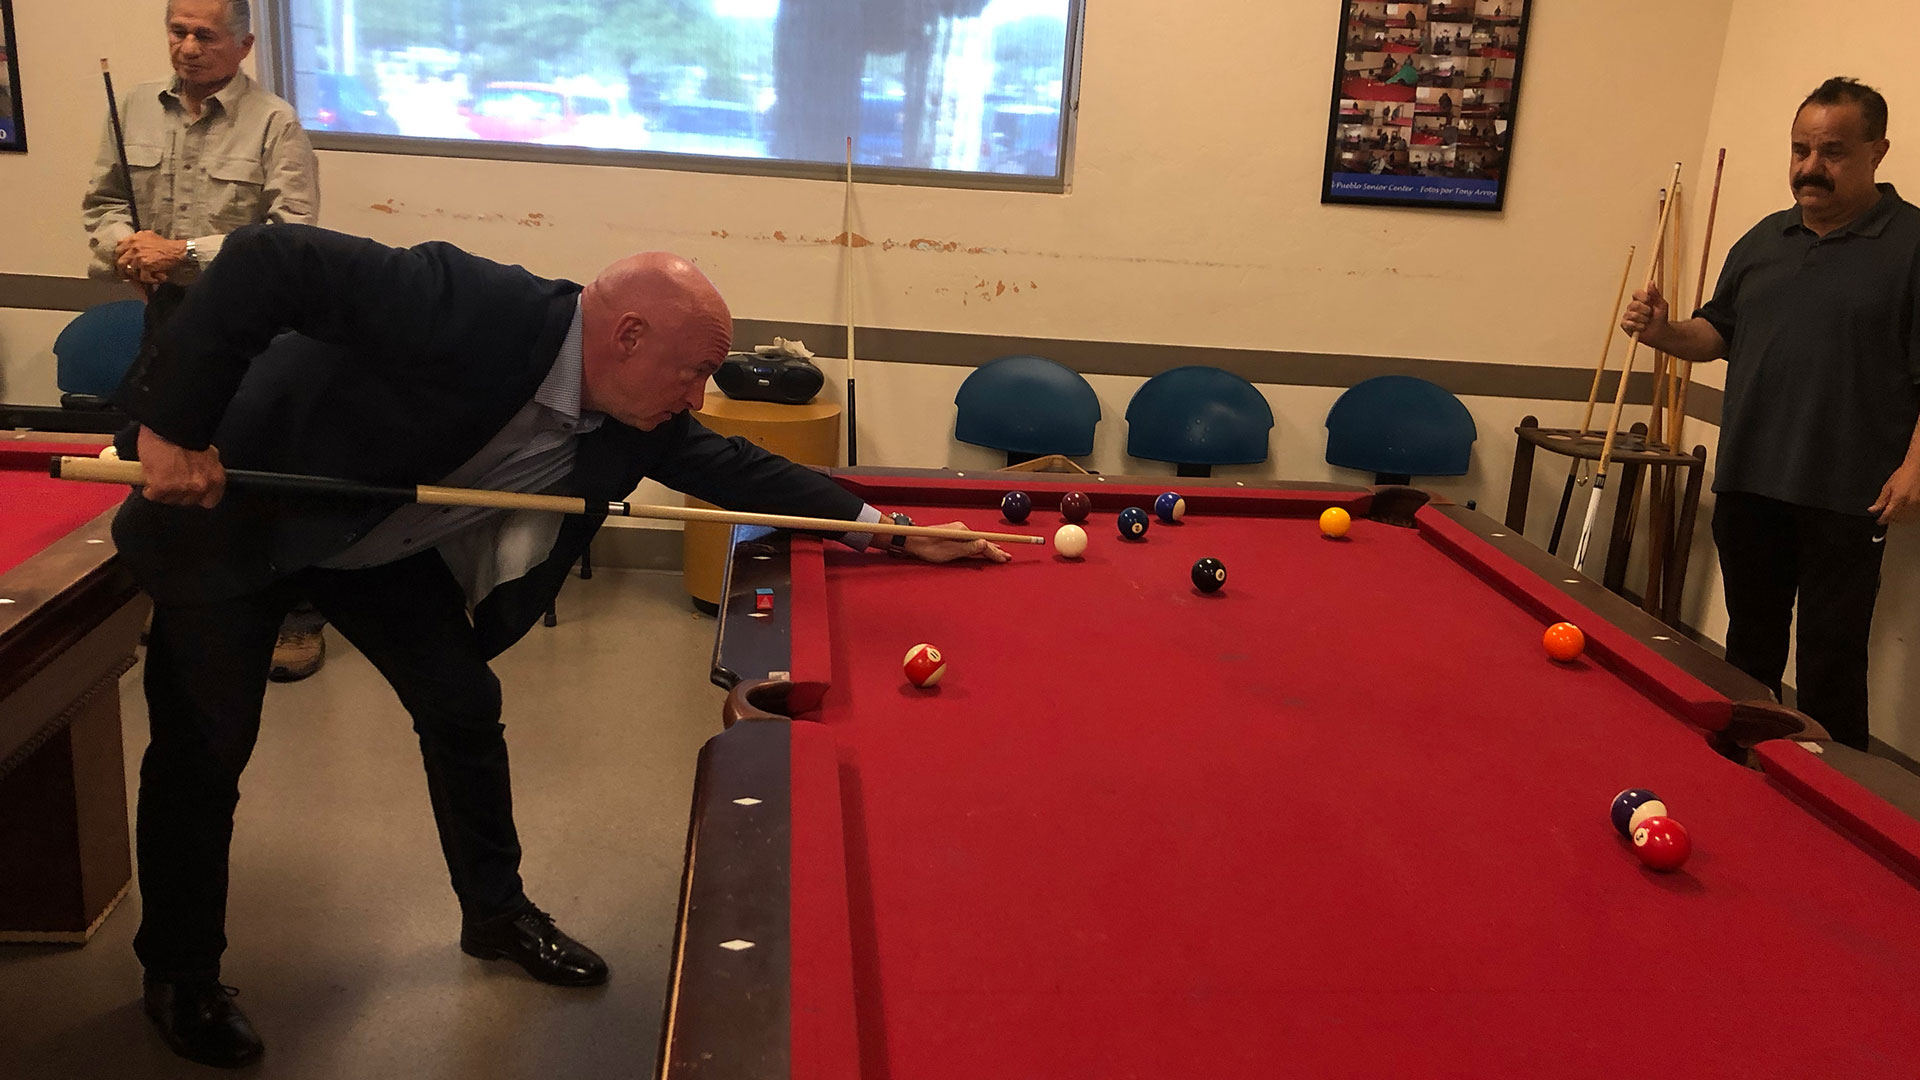 Democratic candidate for U.S. Senate Mark Kelly plays pool with senior citizens at the El Pueblo Center in Tucson, Sept. 17, 2019